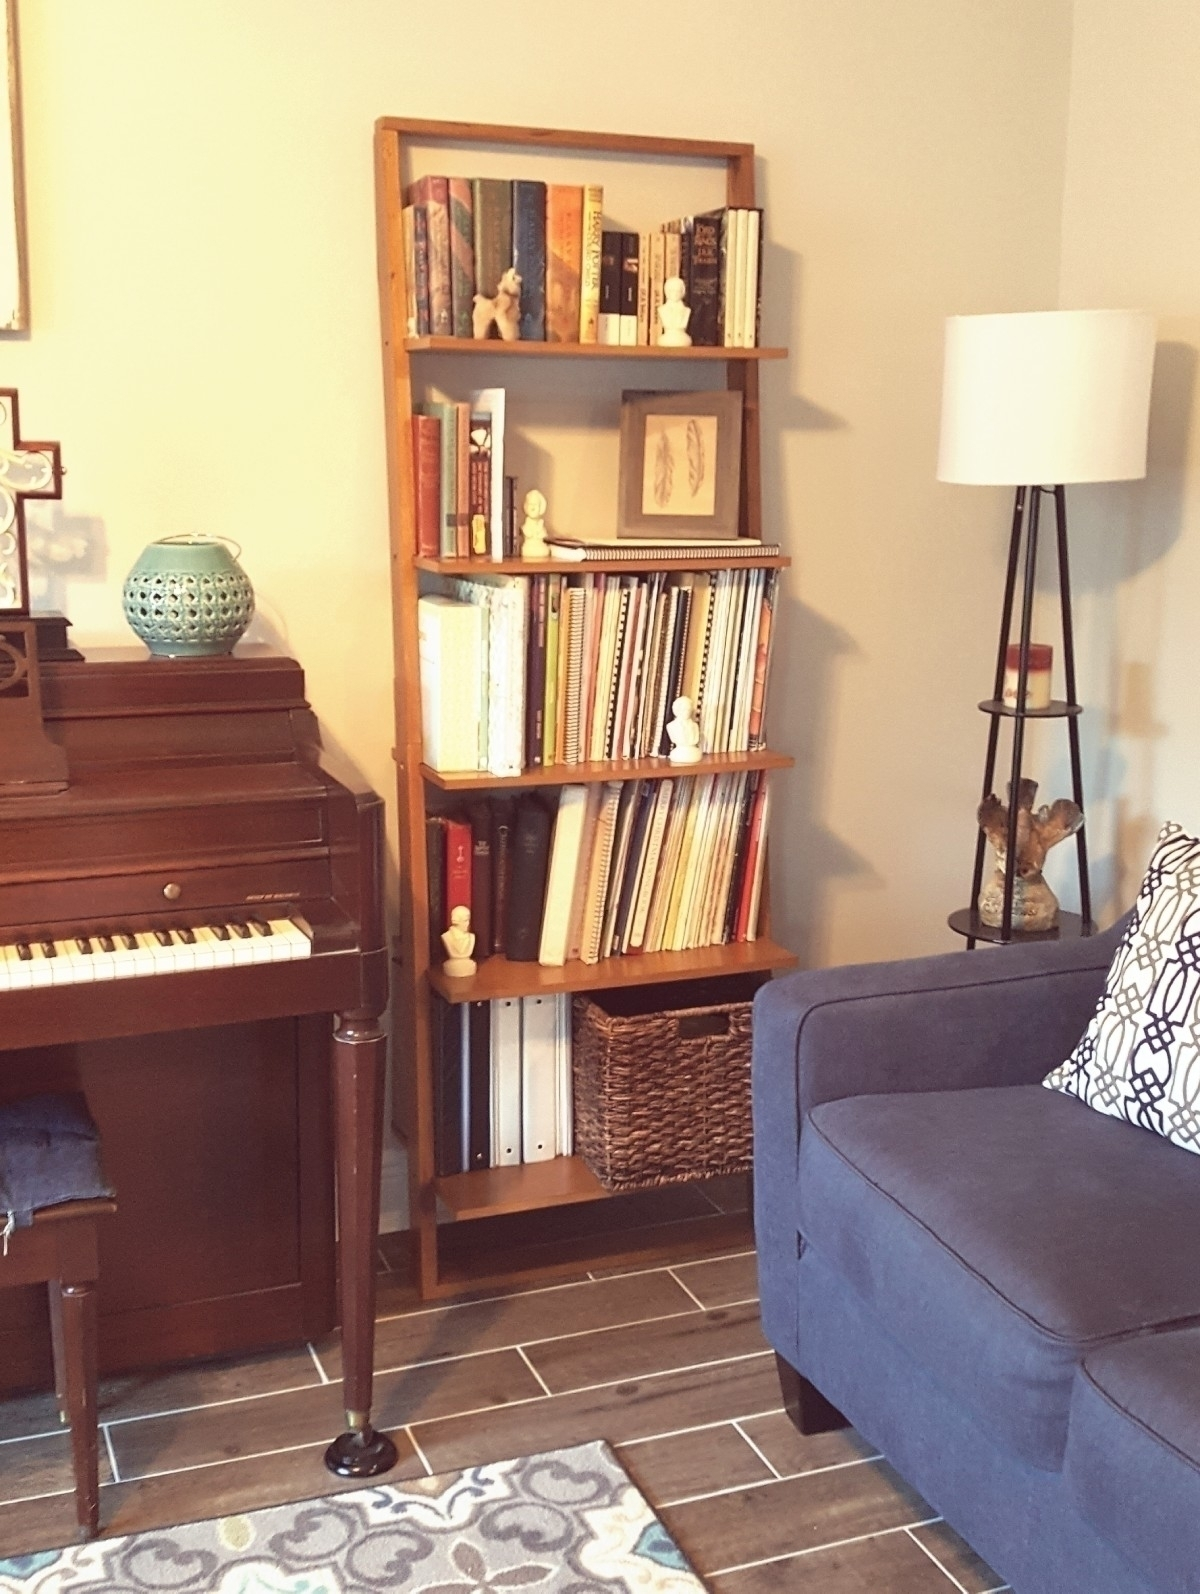 bought leaning bookcase Wayfair - reed_therapy   ello